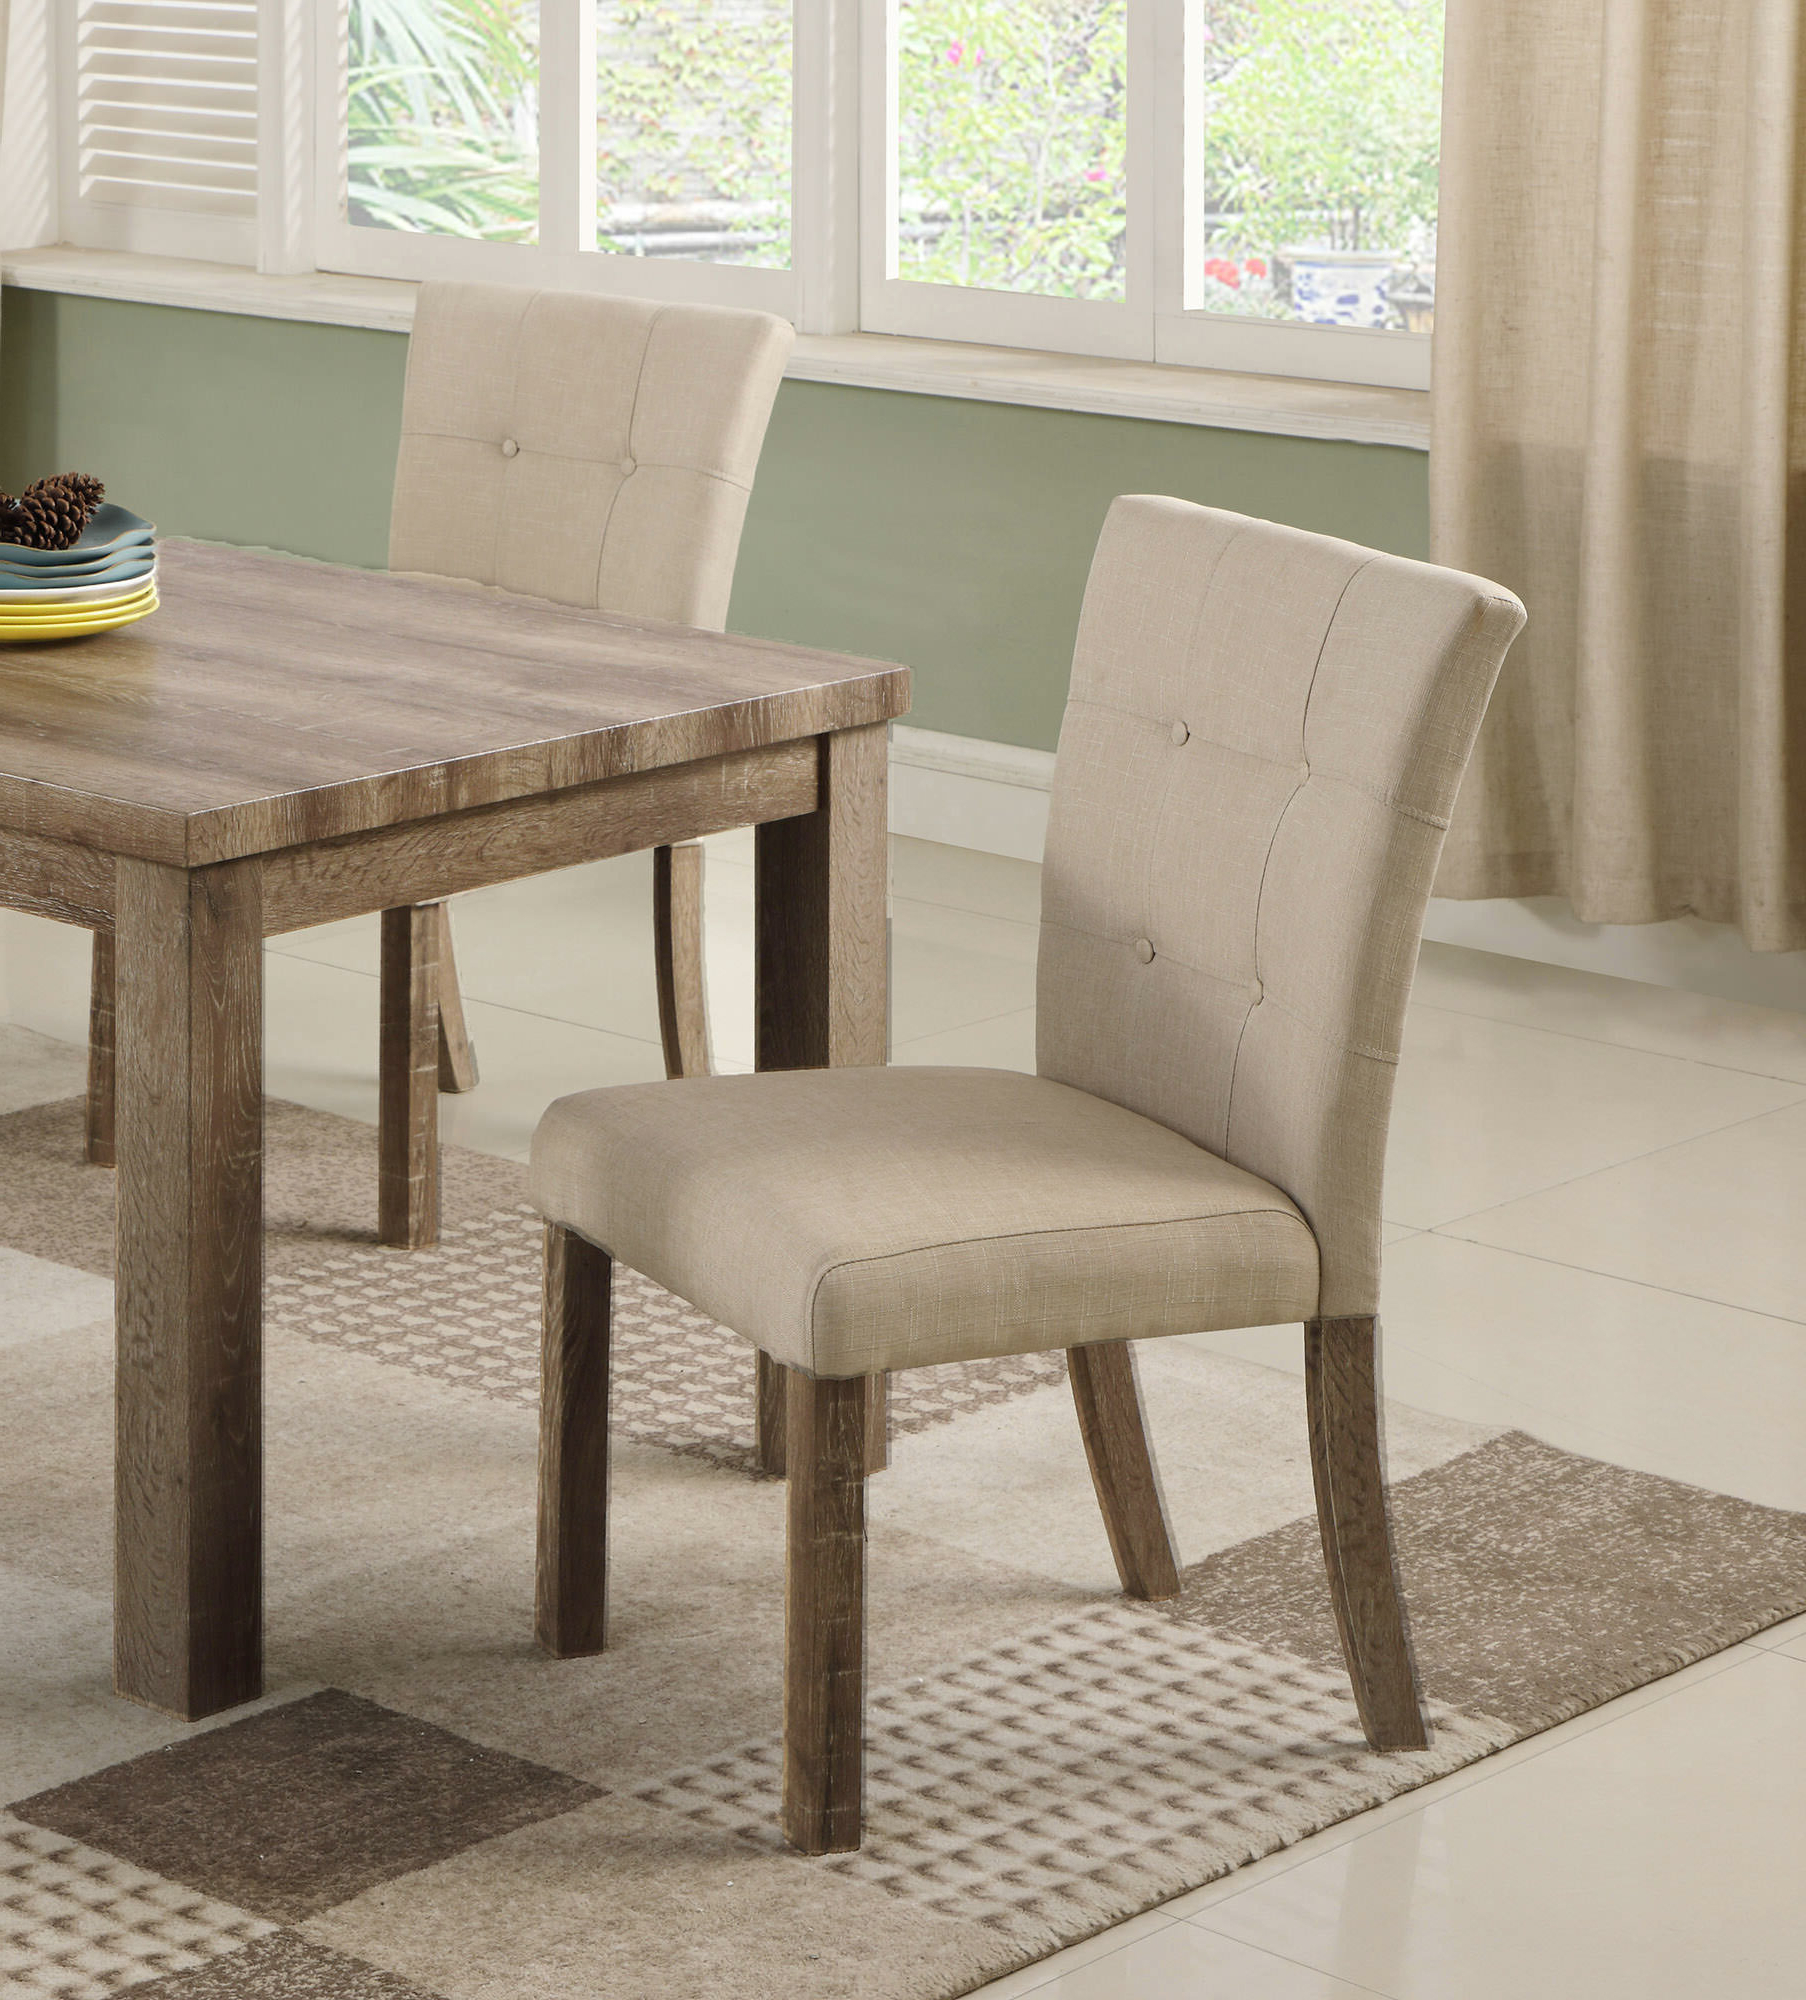 Clanton Upholstered Dining Chair Regarding 2019 Aaliyah Parsons Chairs (View 16 of 20)